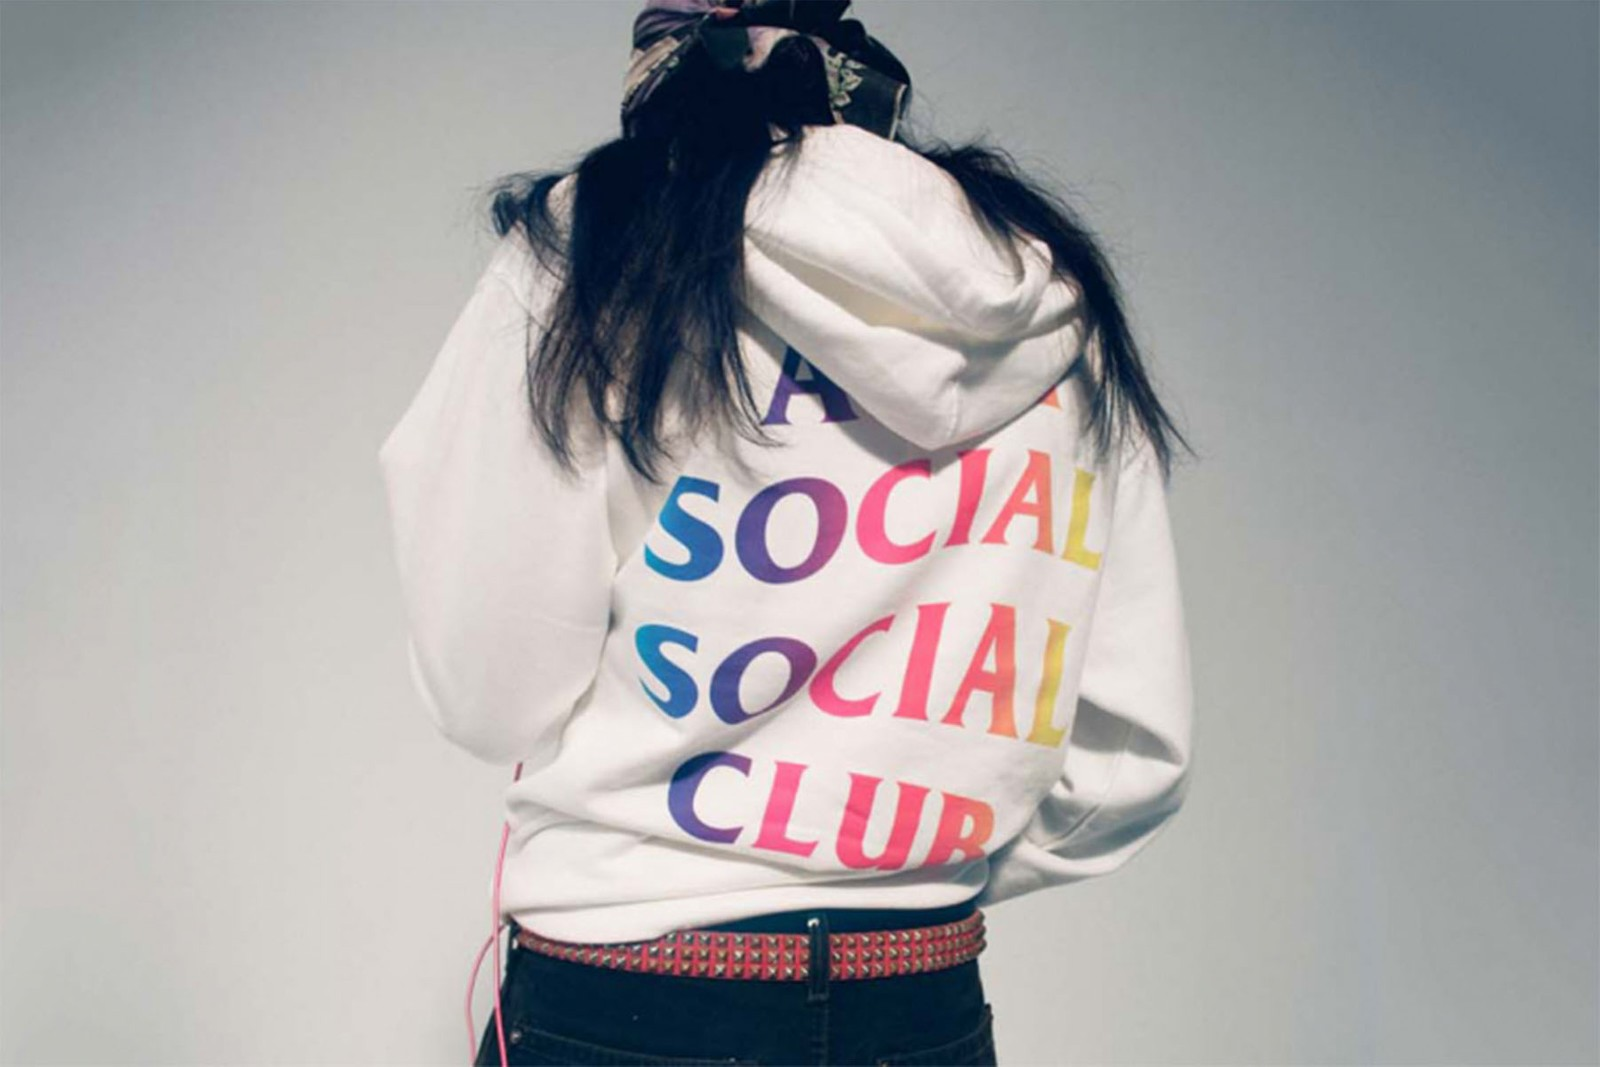 LOOKBOOK ANTI SOCIAL SOCIAL CLUB SUPREME CRESSI BEAMS SPEEDO CALI THORNHILL DEWITT GUILLAUME BERG AKIRA KATSUHIRO OTOMO KOSUKE KAWAMURA NANA-NANA AKIRA ART WALL NIKE NIKE ACG NIKE ACG AIR SKARN STUSSY DOVER STREET MARKET EDITORIALS CACTUS PLANT FLEA MARKET DOVER STREET MARKET LOS ANGELES